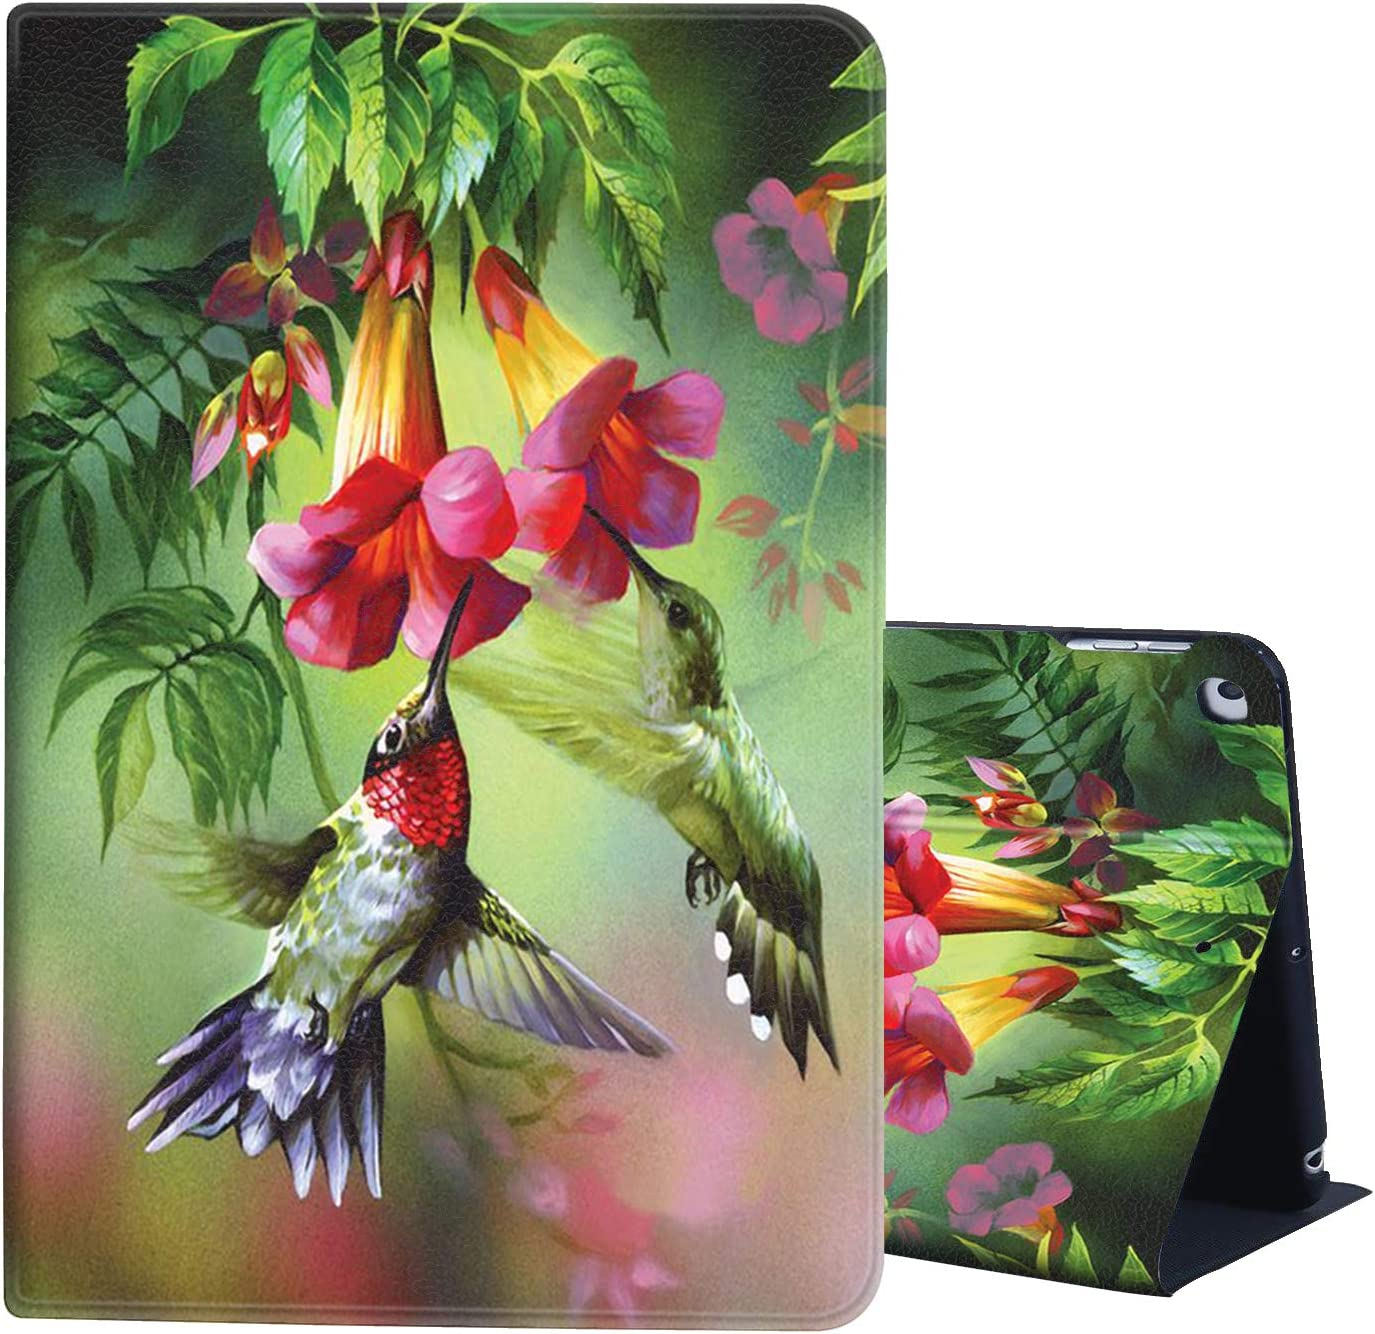 iPad 8th Complete Free Shipping Gen Case 2020 Max 84% OFF Lightweight AIRWEE Slim 10.2